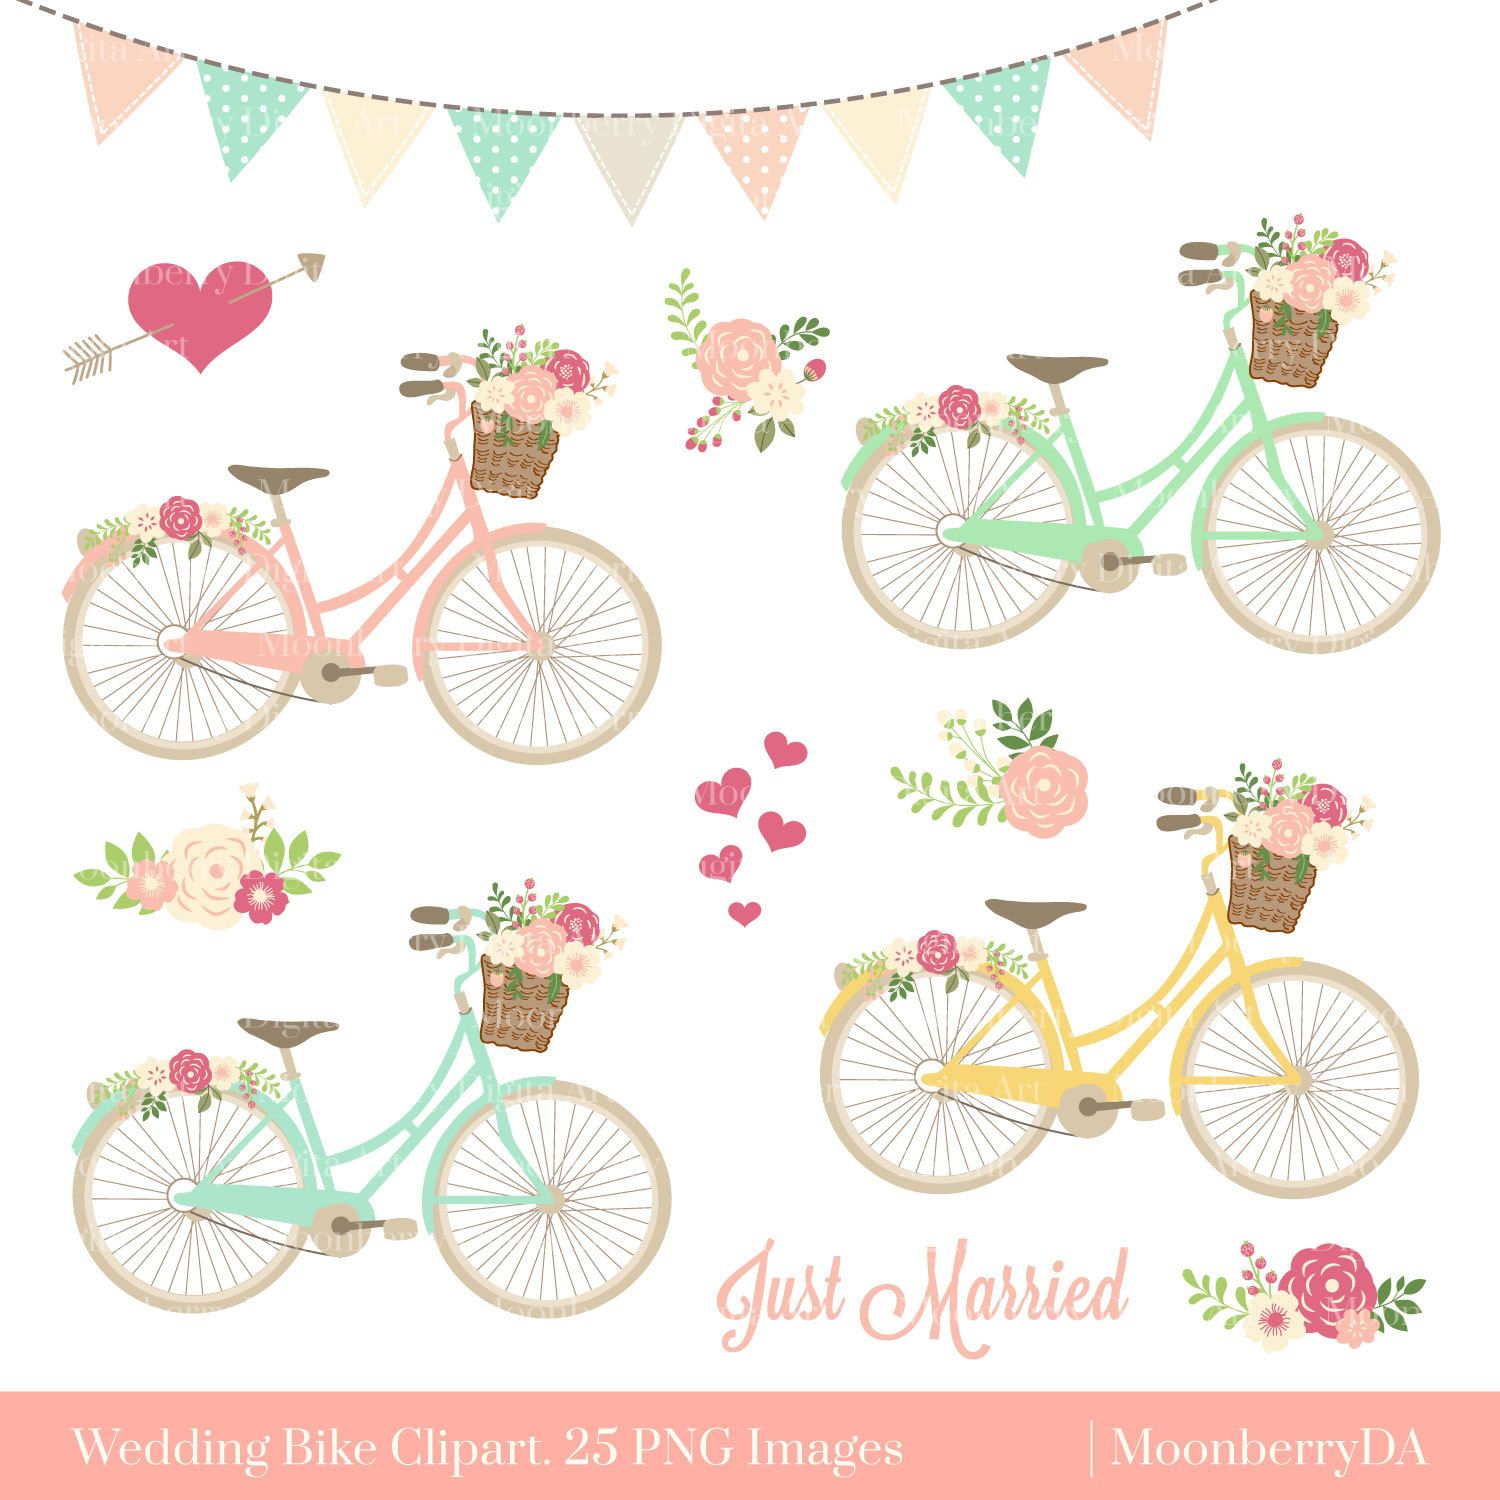 Scrapbook images bike clipart picture black and white Pin by Kathryn Berger on Embellishments | Clip art, Bicycle ... picture black and white